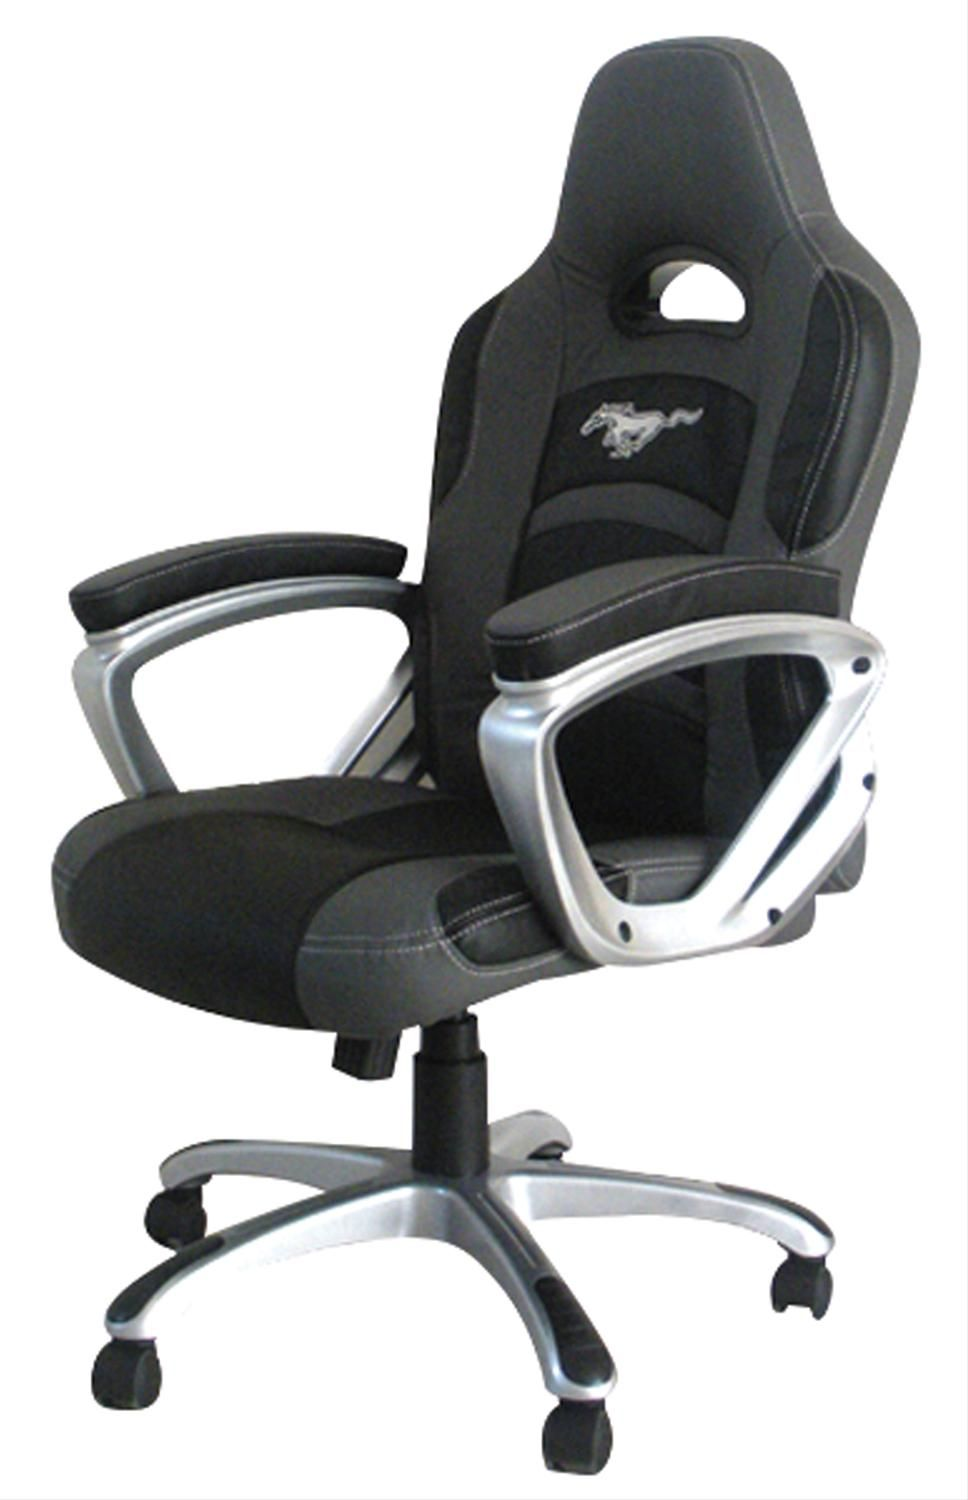 Racing Desk Chair White Accent With Ottoman Gray Black Office Ford Mustang Emblem Free Shipping On Orders Over 99 At Genuine Hotrod Hardware